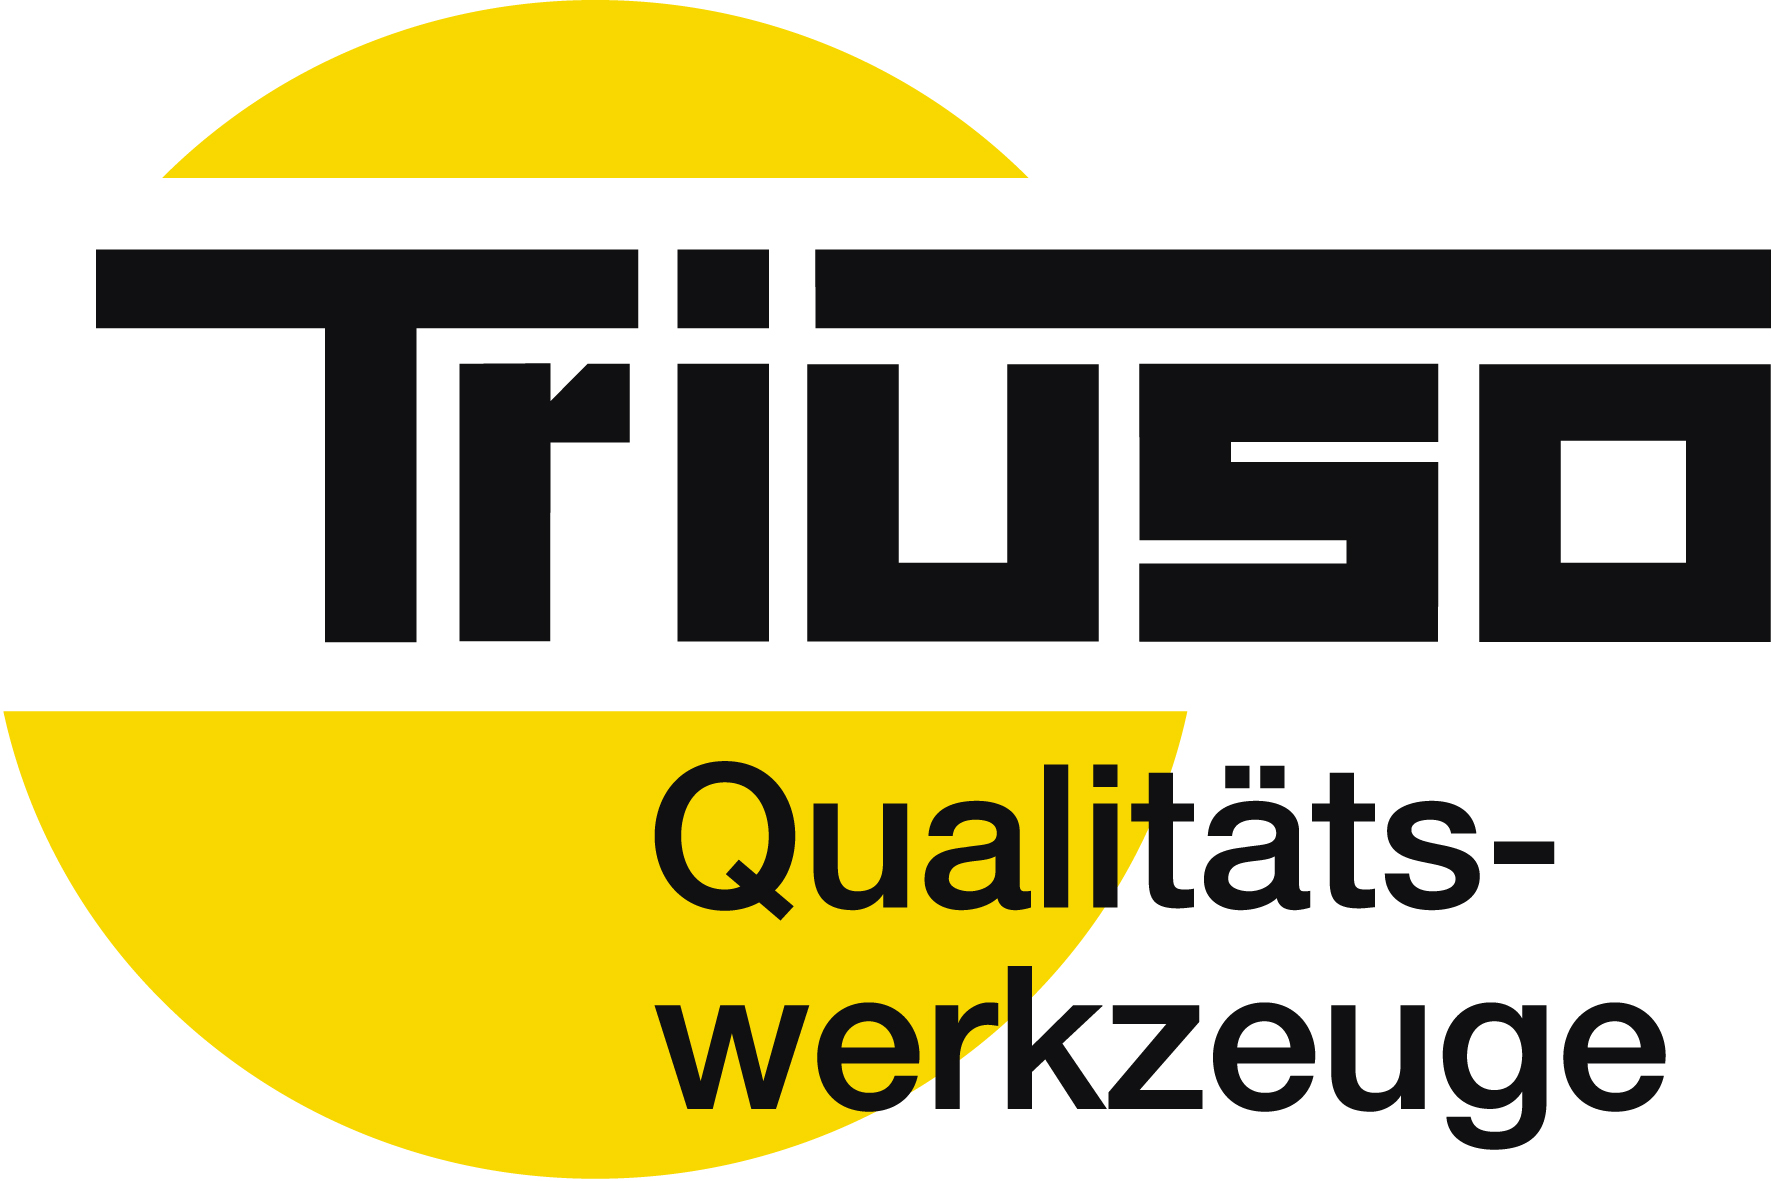 https://bilder.peters-living.de/triuso/logo/logo.jpg